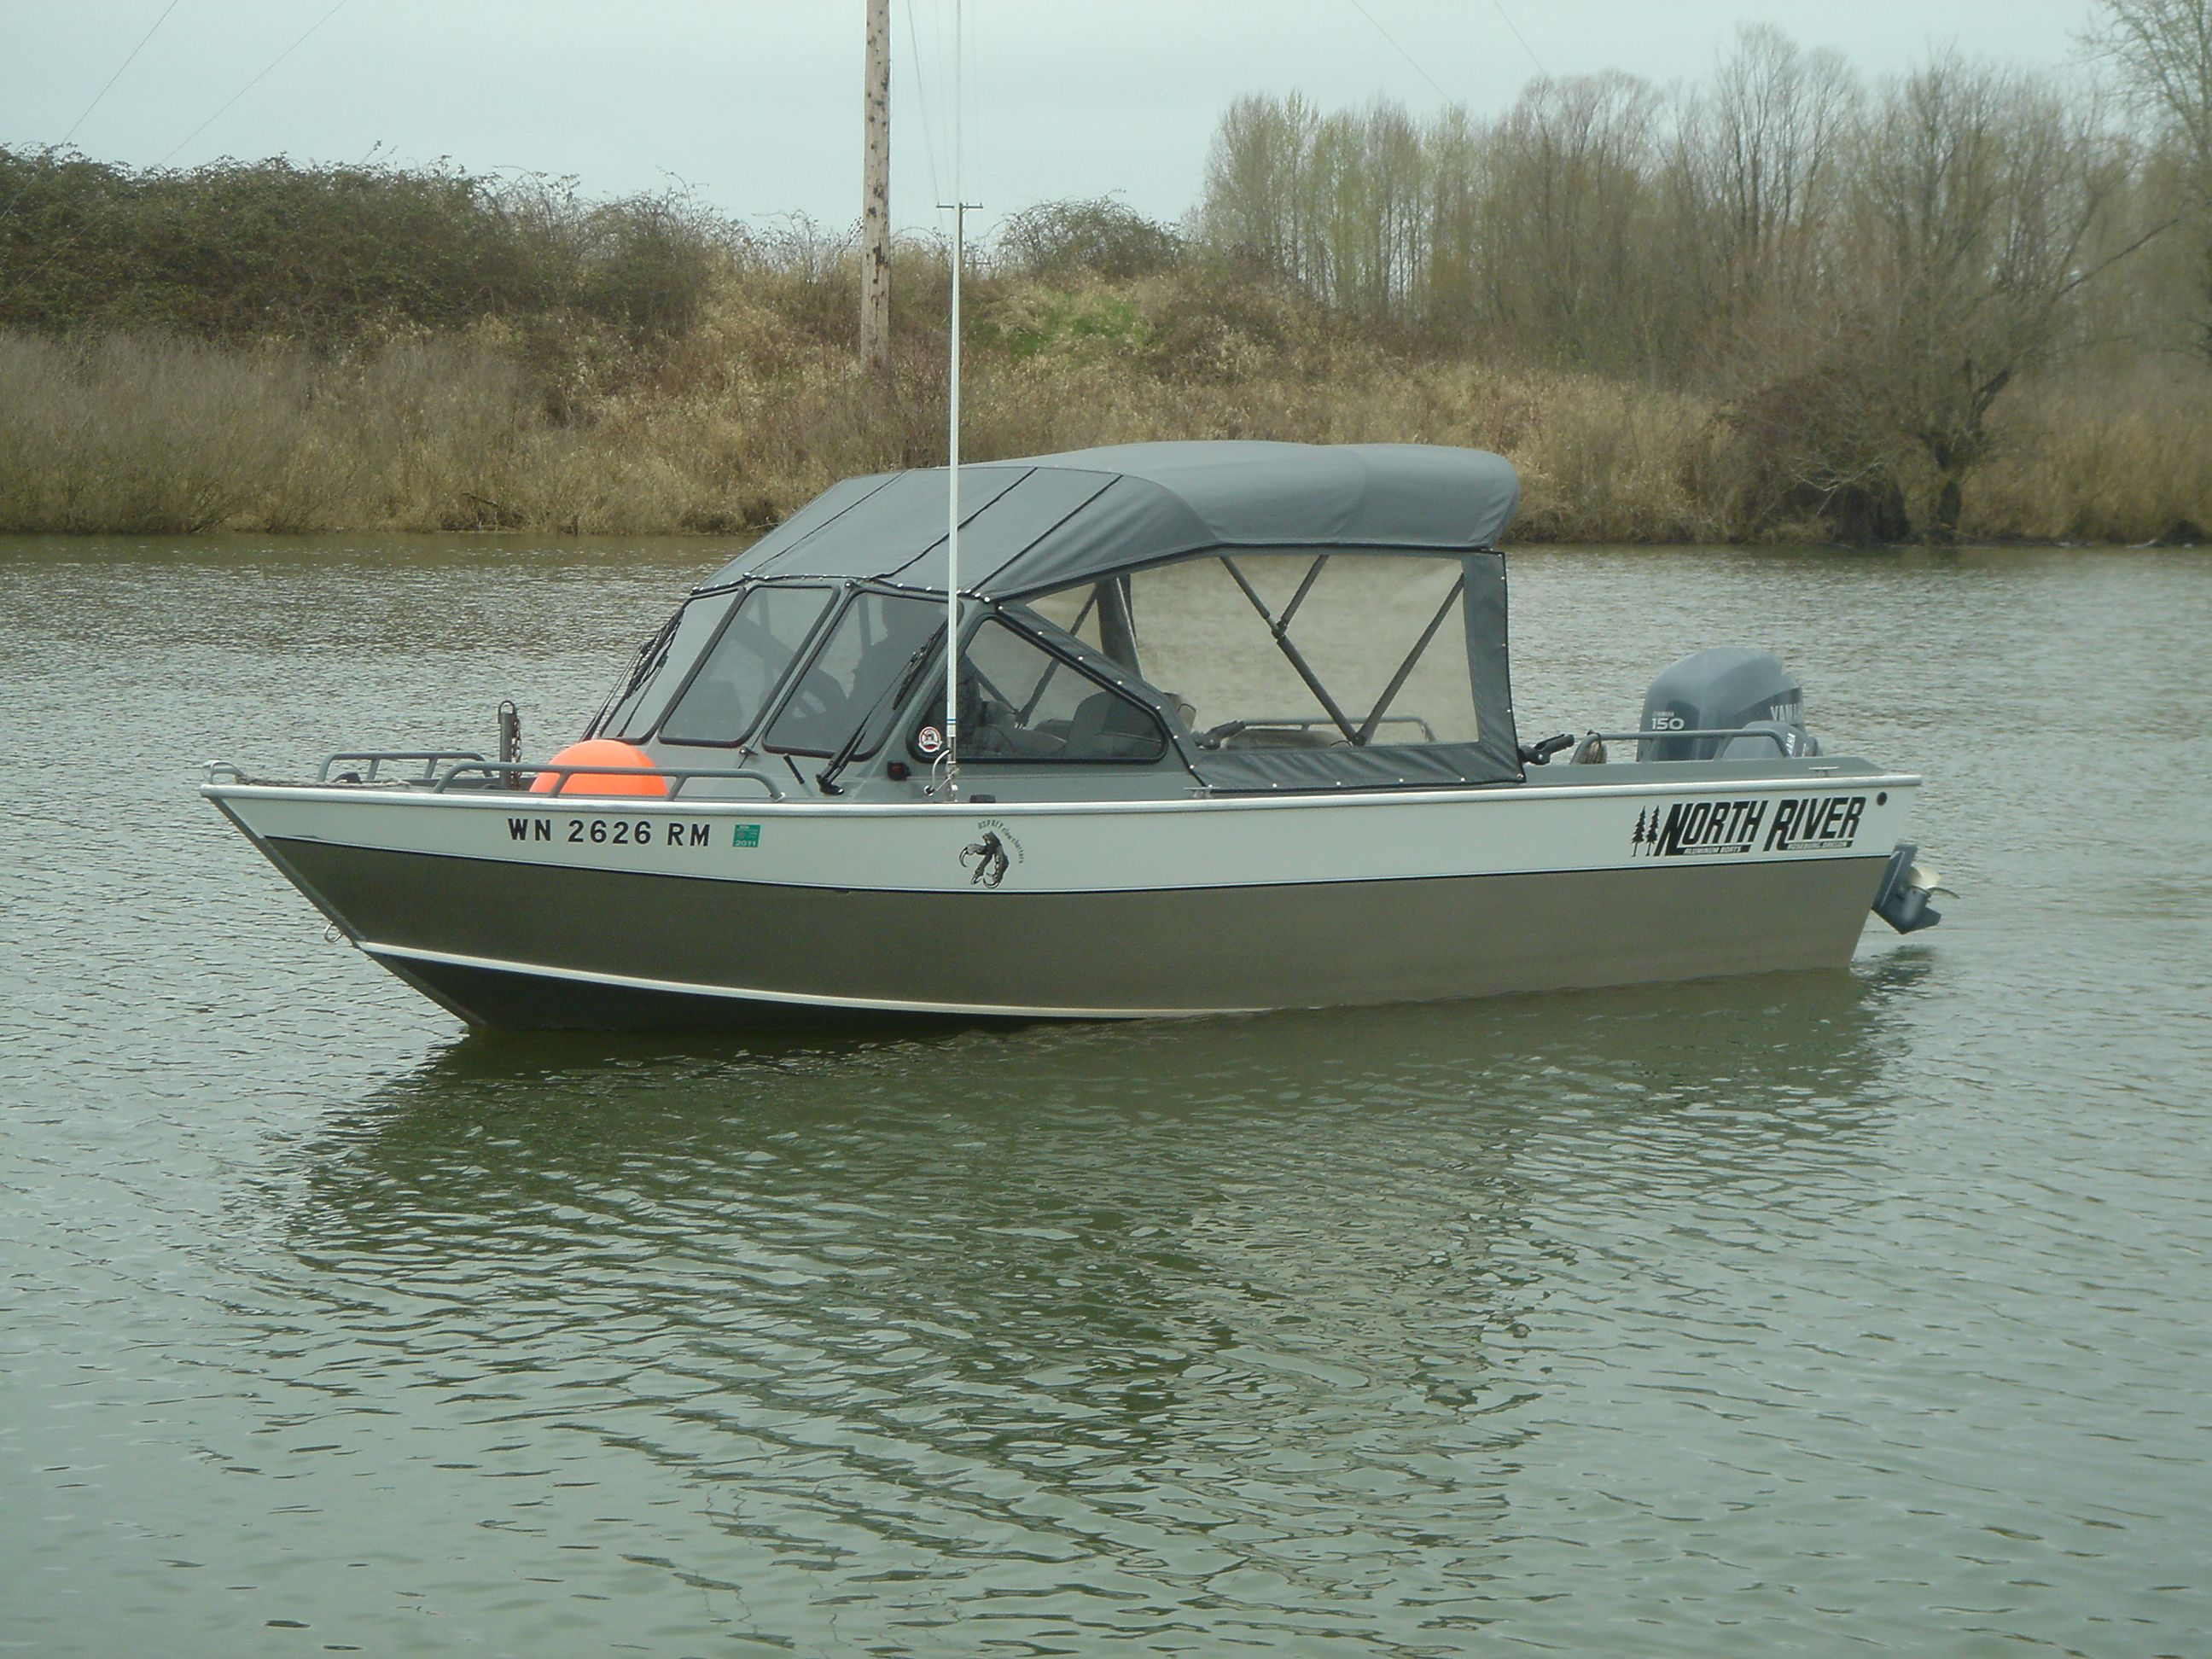 North river 20 39 seahawk osprey claw charters 39 awesome for Seahawk fishing boat